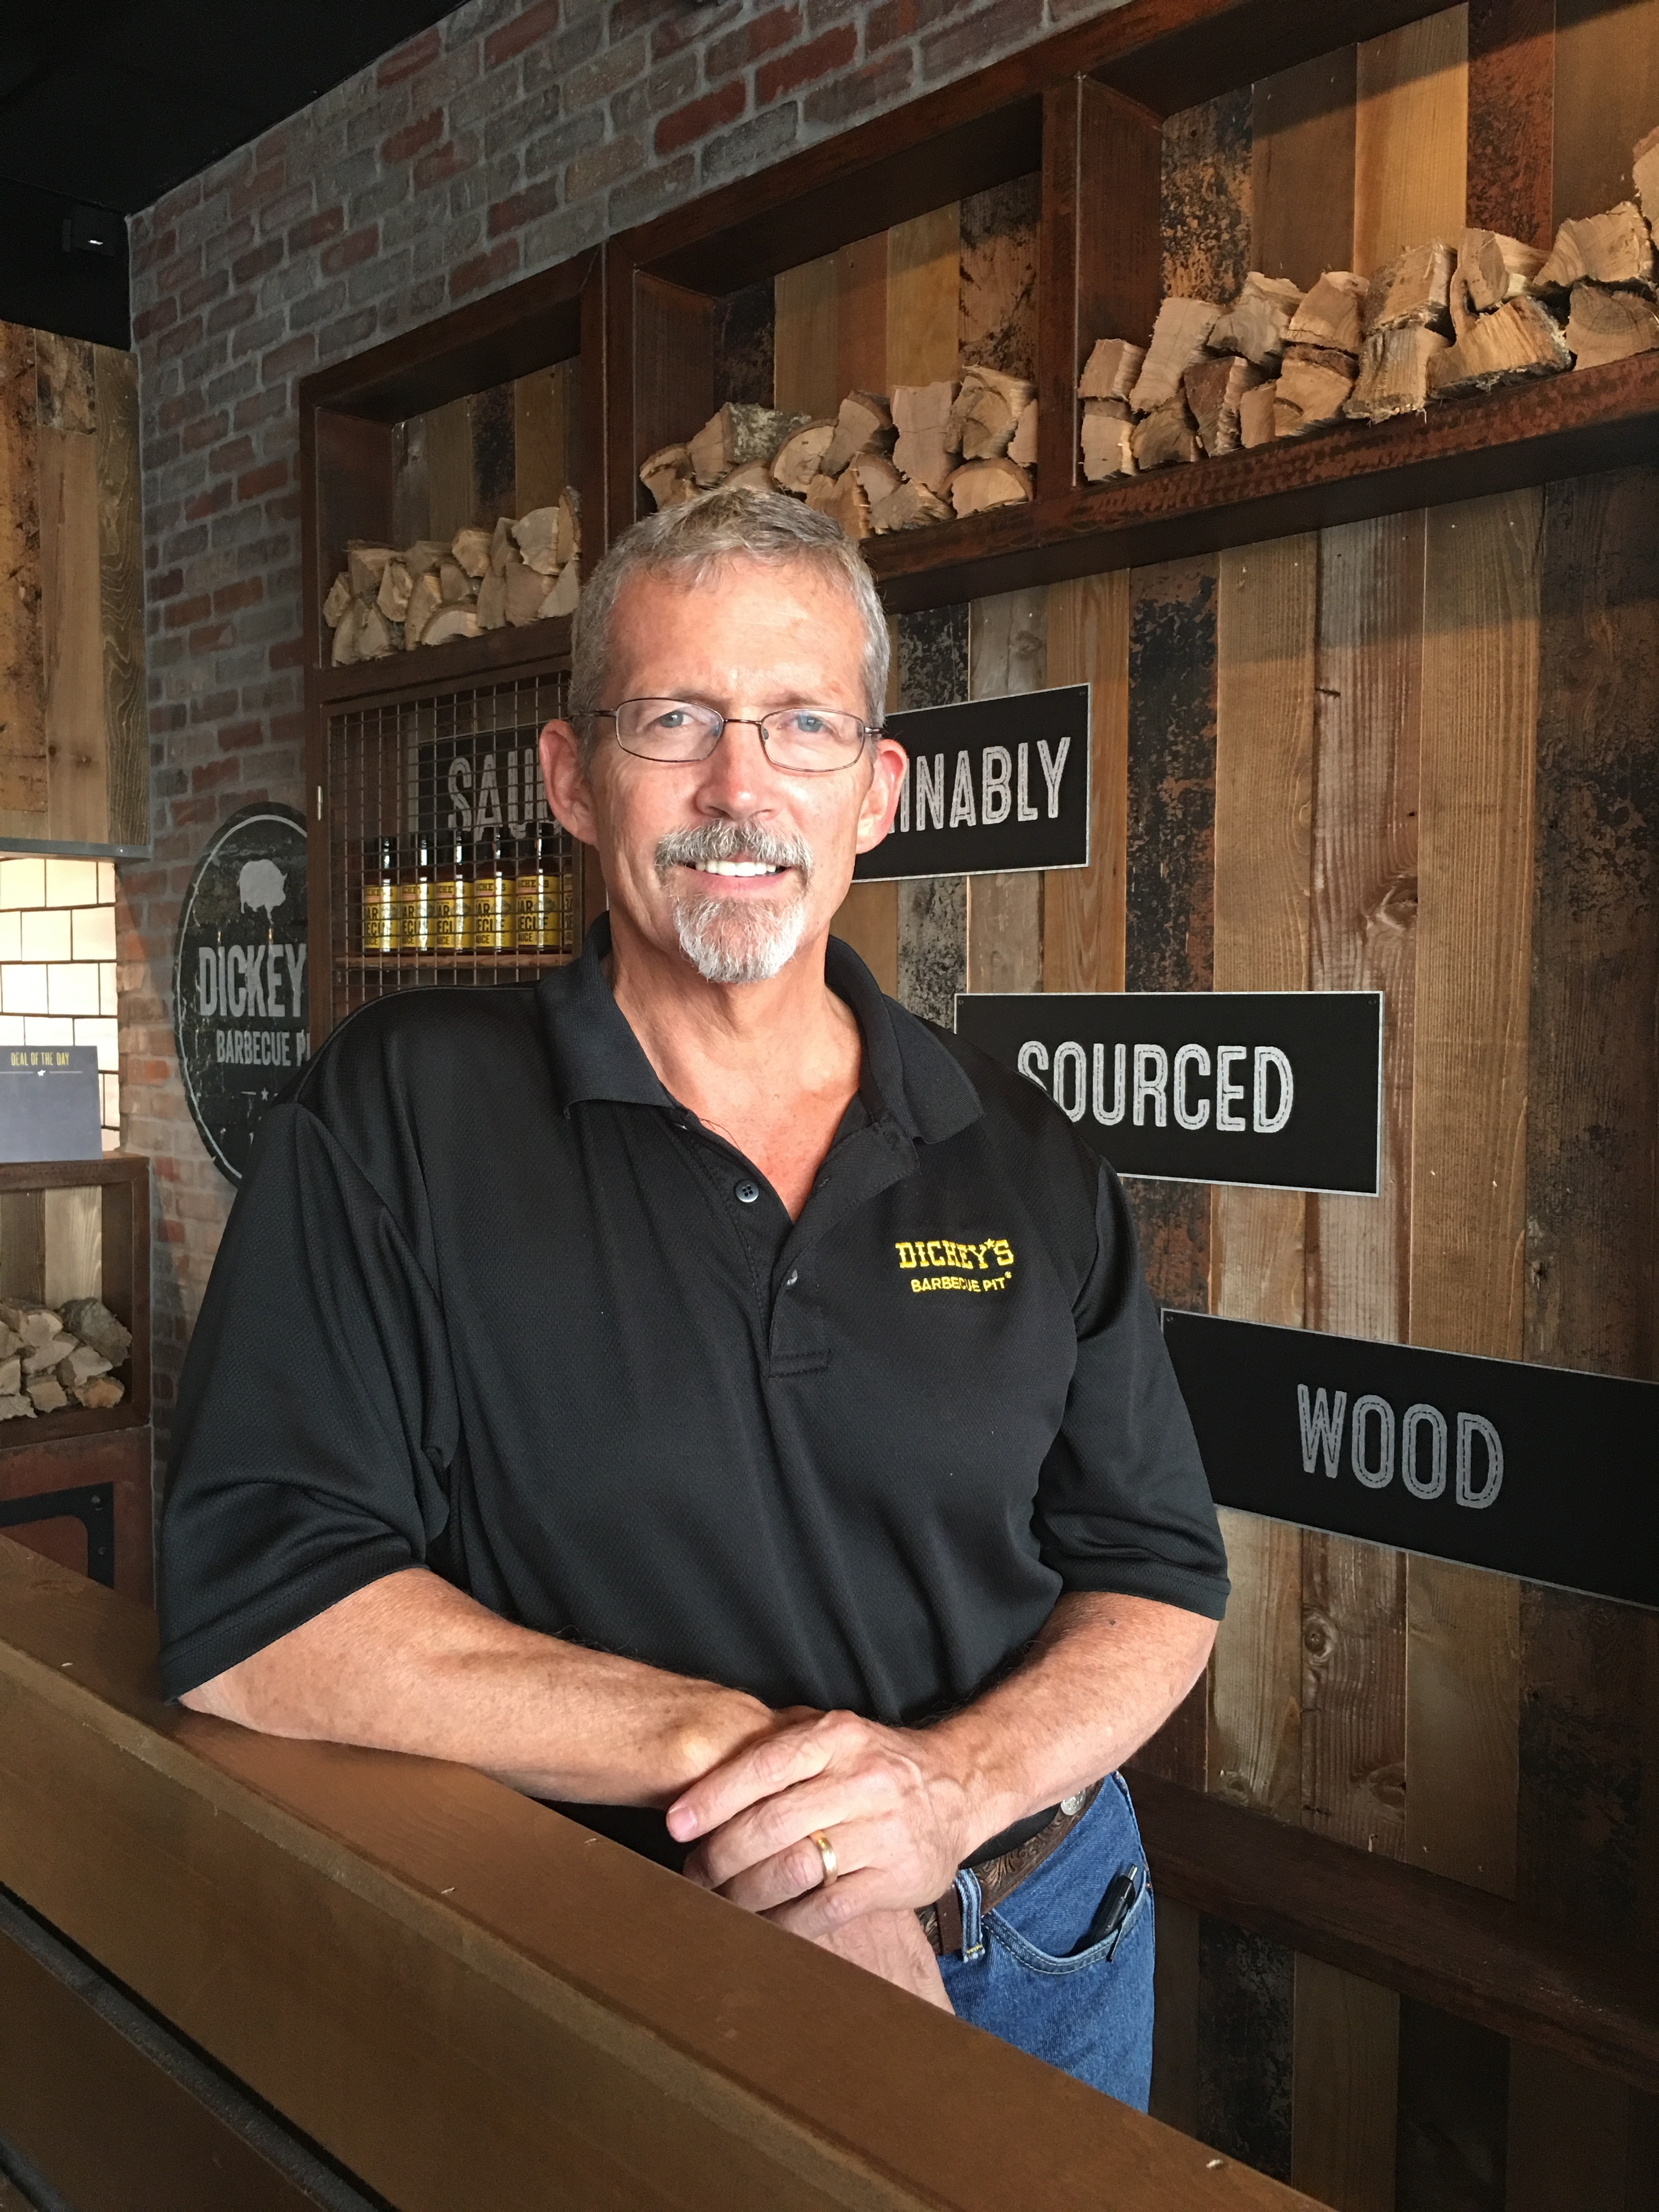 Dickey's Barbecue Pit Expands in Louisiana: New Location Opens in Lake Charles